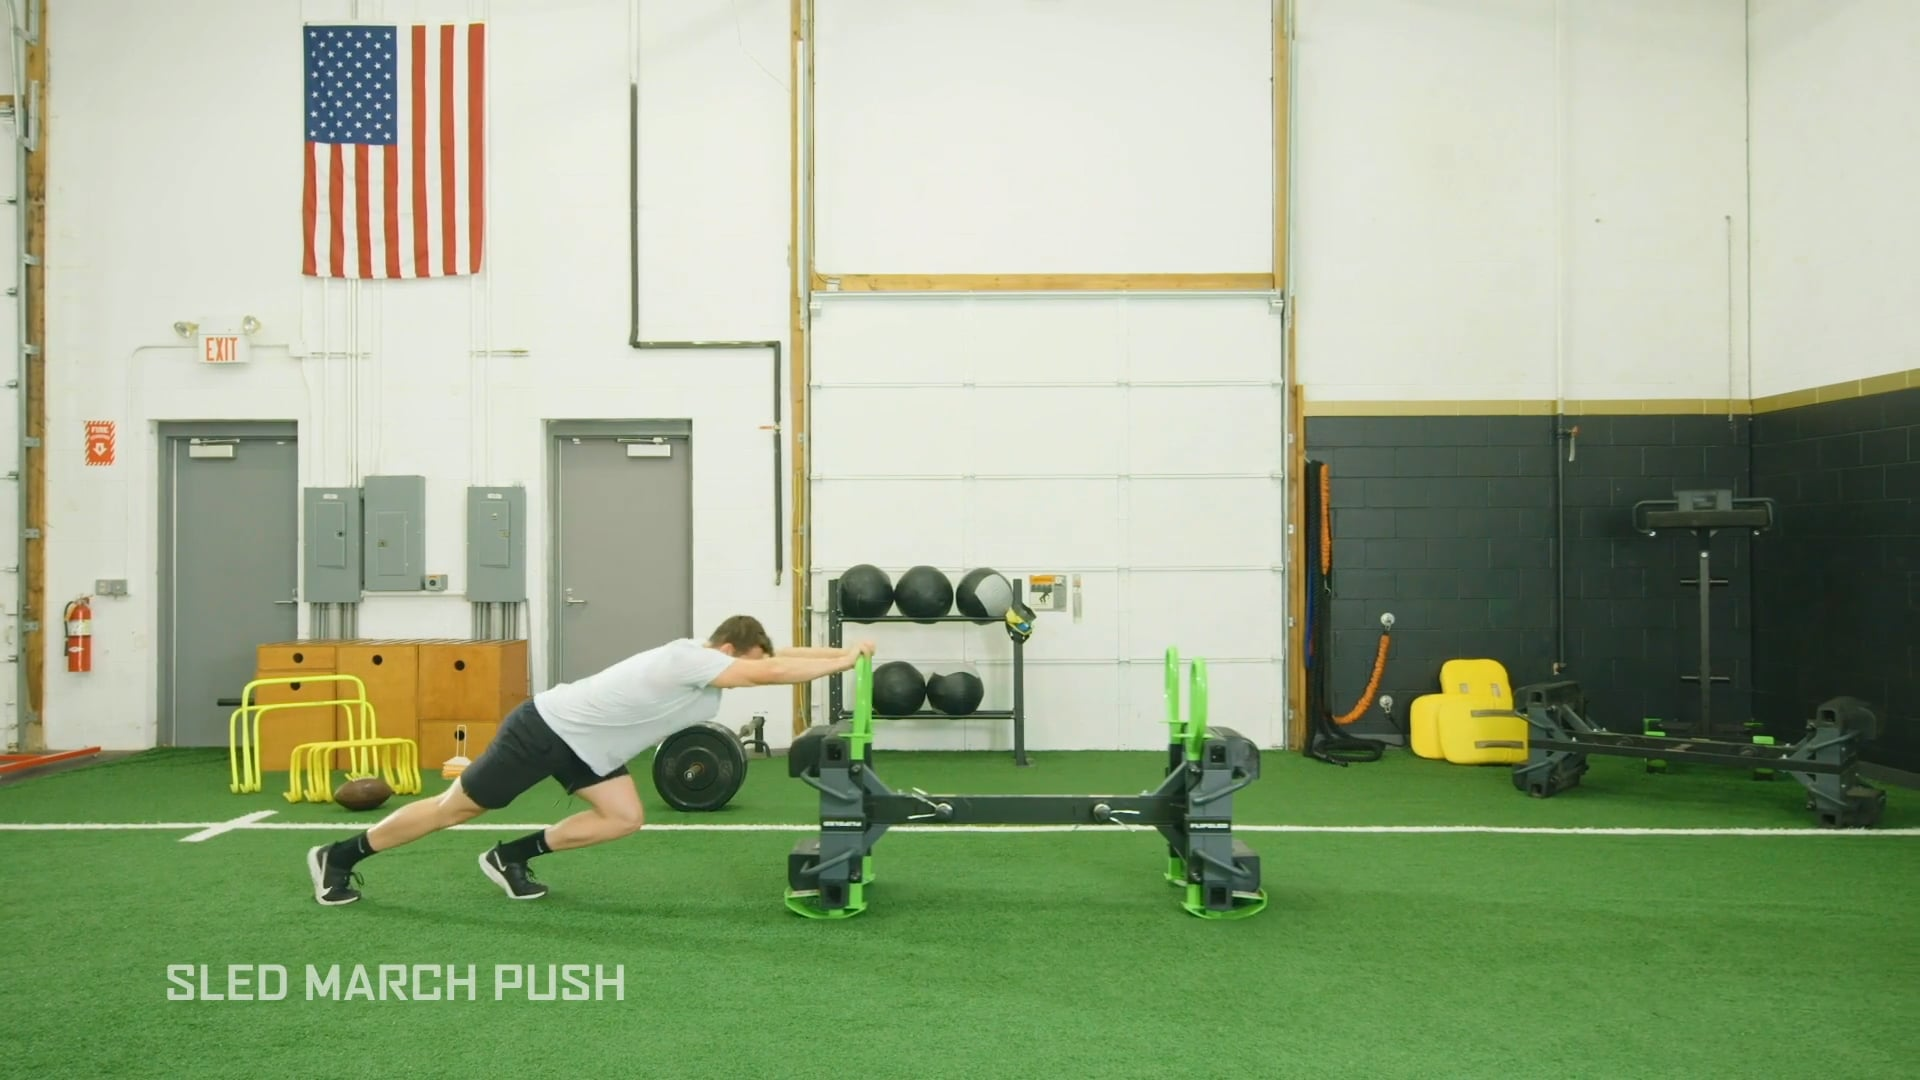 Sled March Push